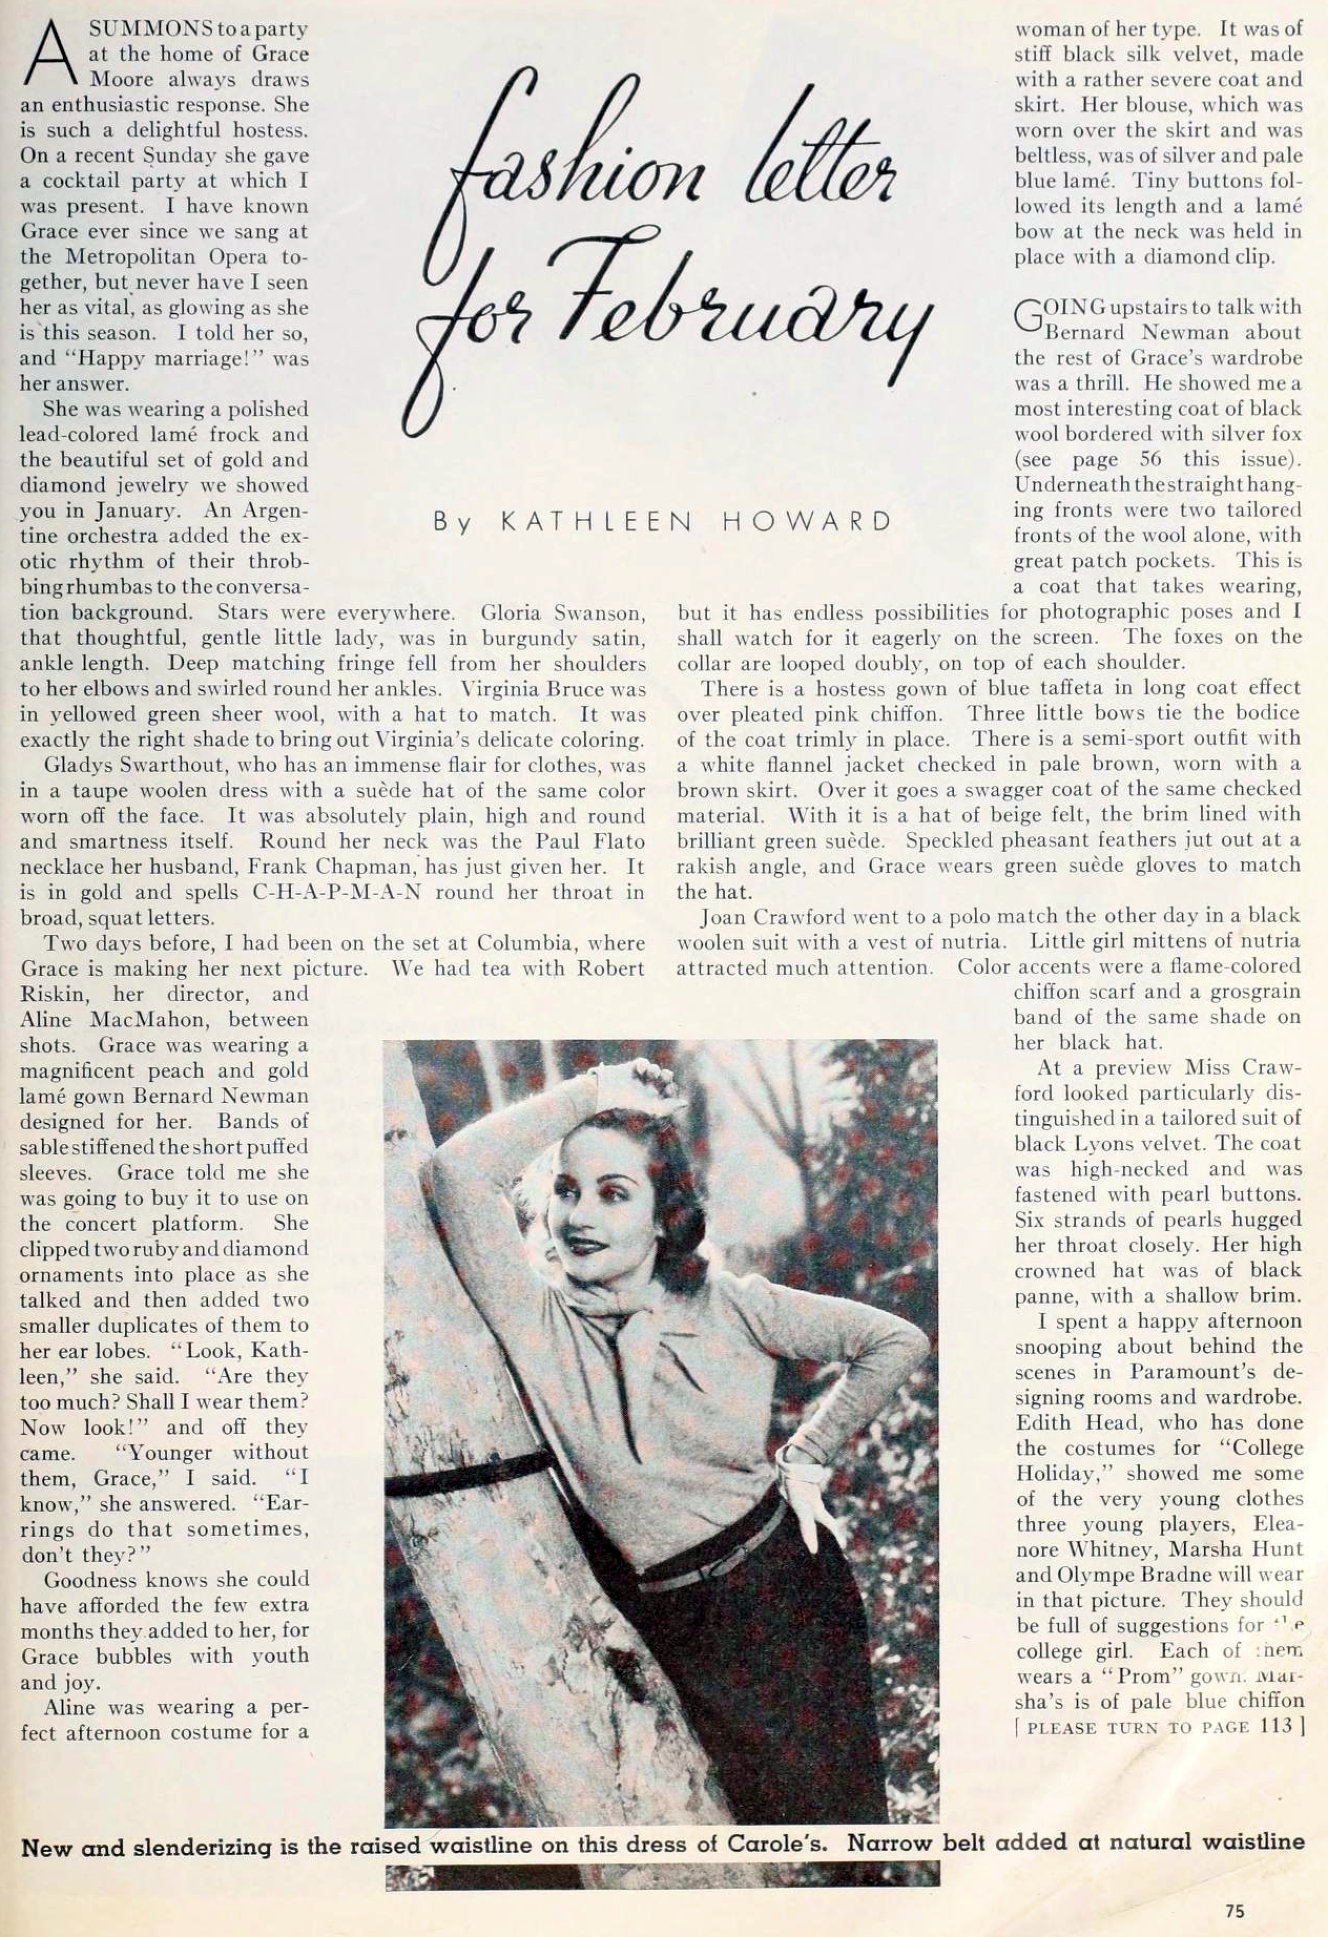 carole lombard photoplay feb 1937 fashion letter 00a